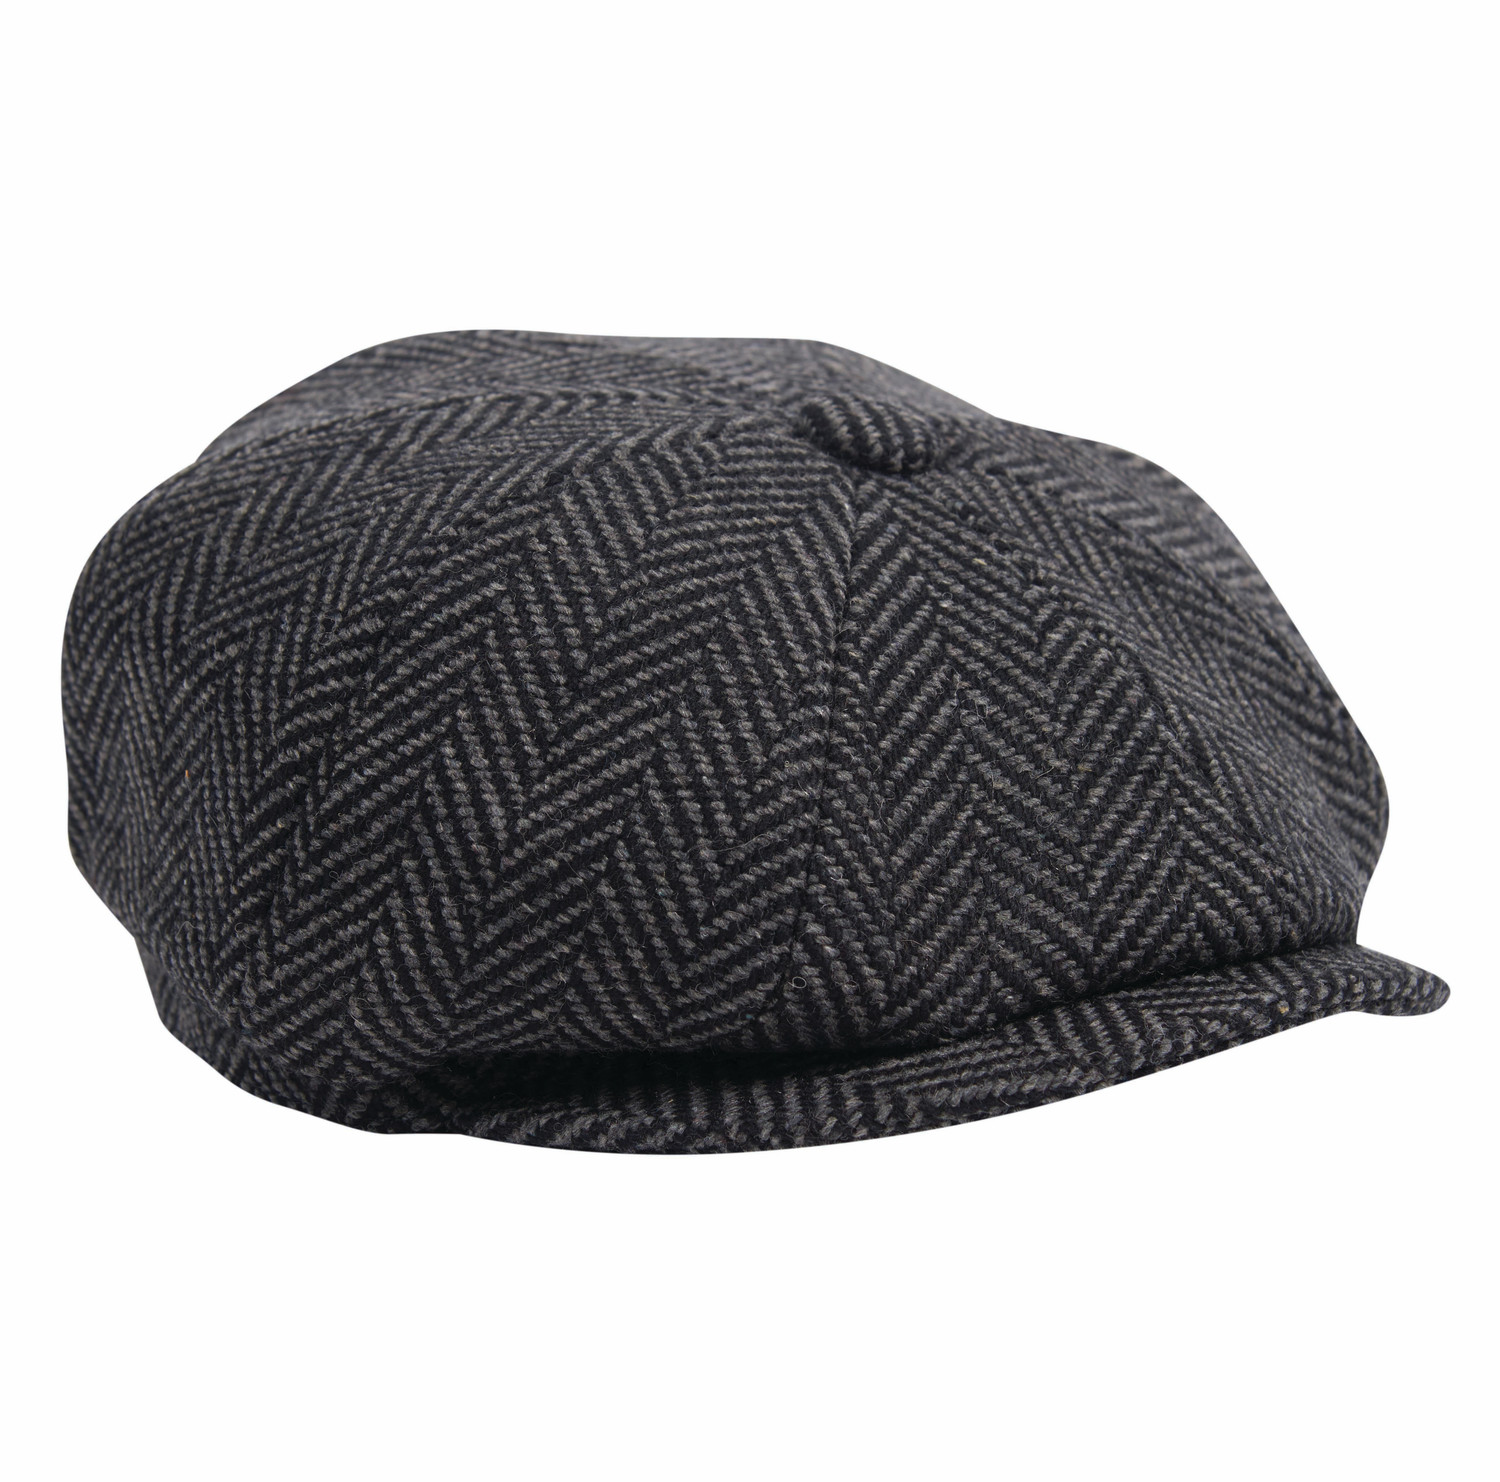 Barbour Mens Mixed Tweed Bakerboy Cap • Homeleigh Garden Centres 0ce39173238